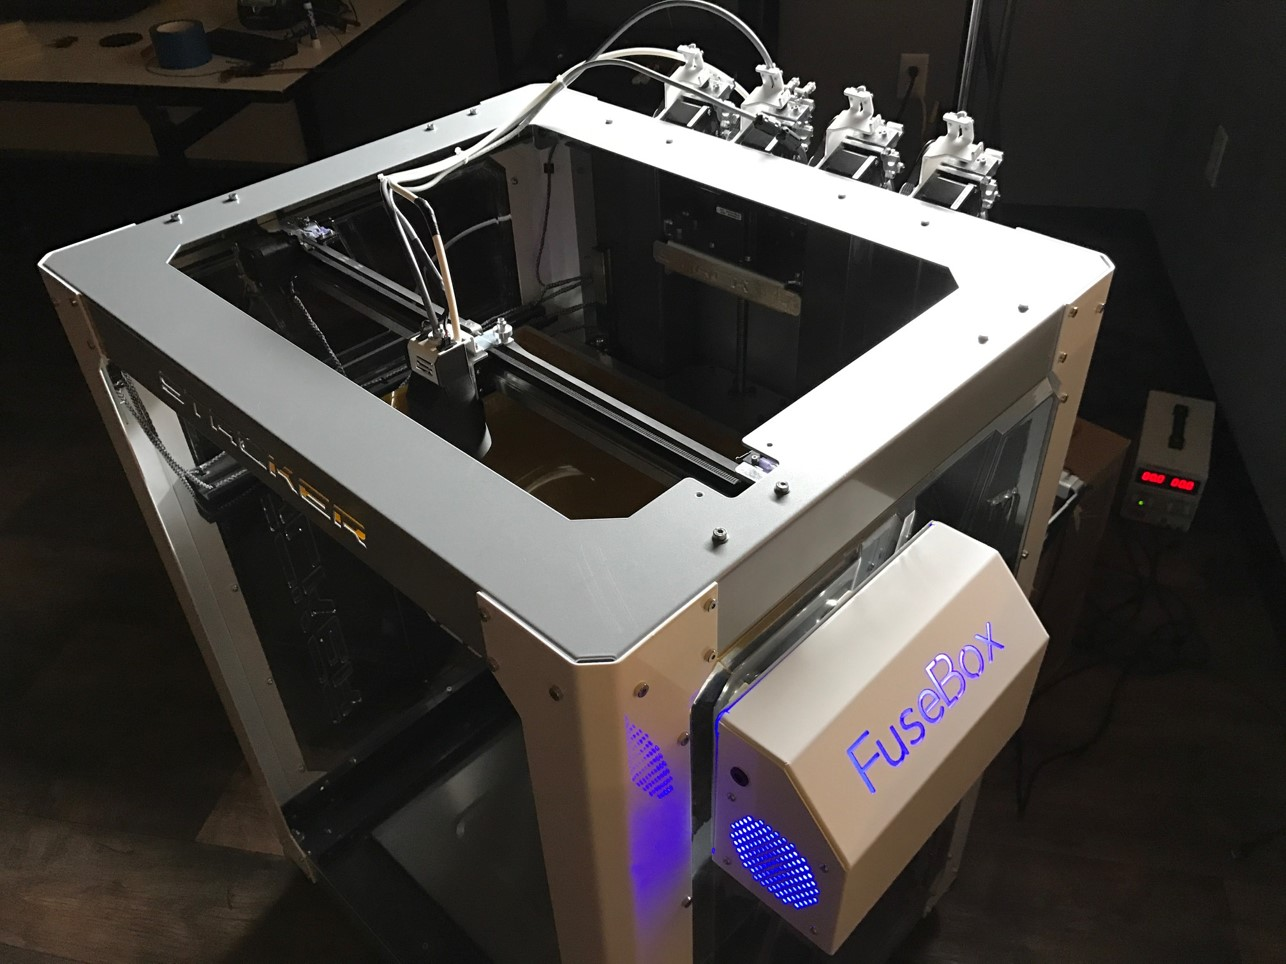 Fusebox essentium's new fusebox uses plasma for 3d printing 3d printing fuse box 3d printer at eliteediting.co